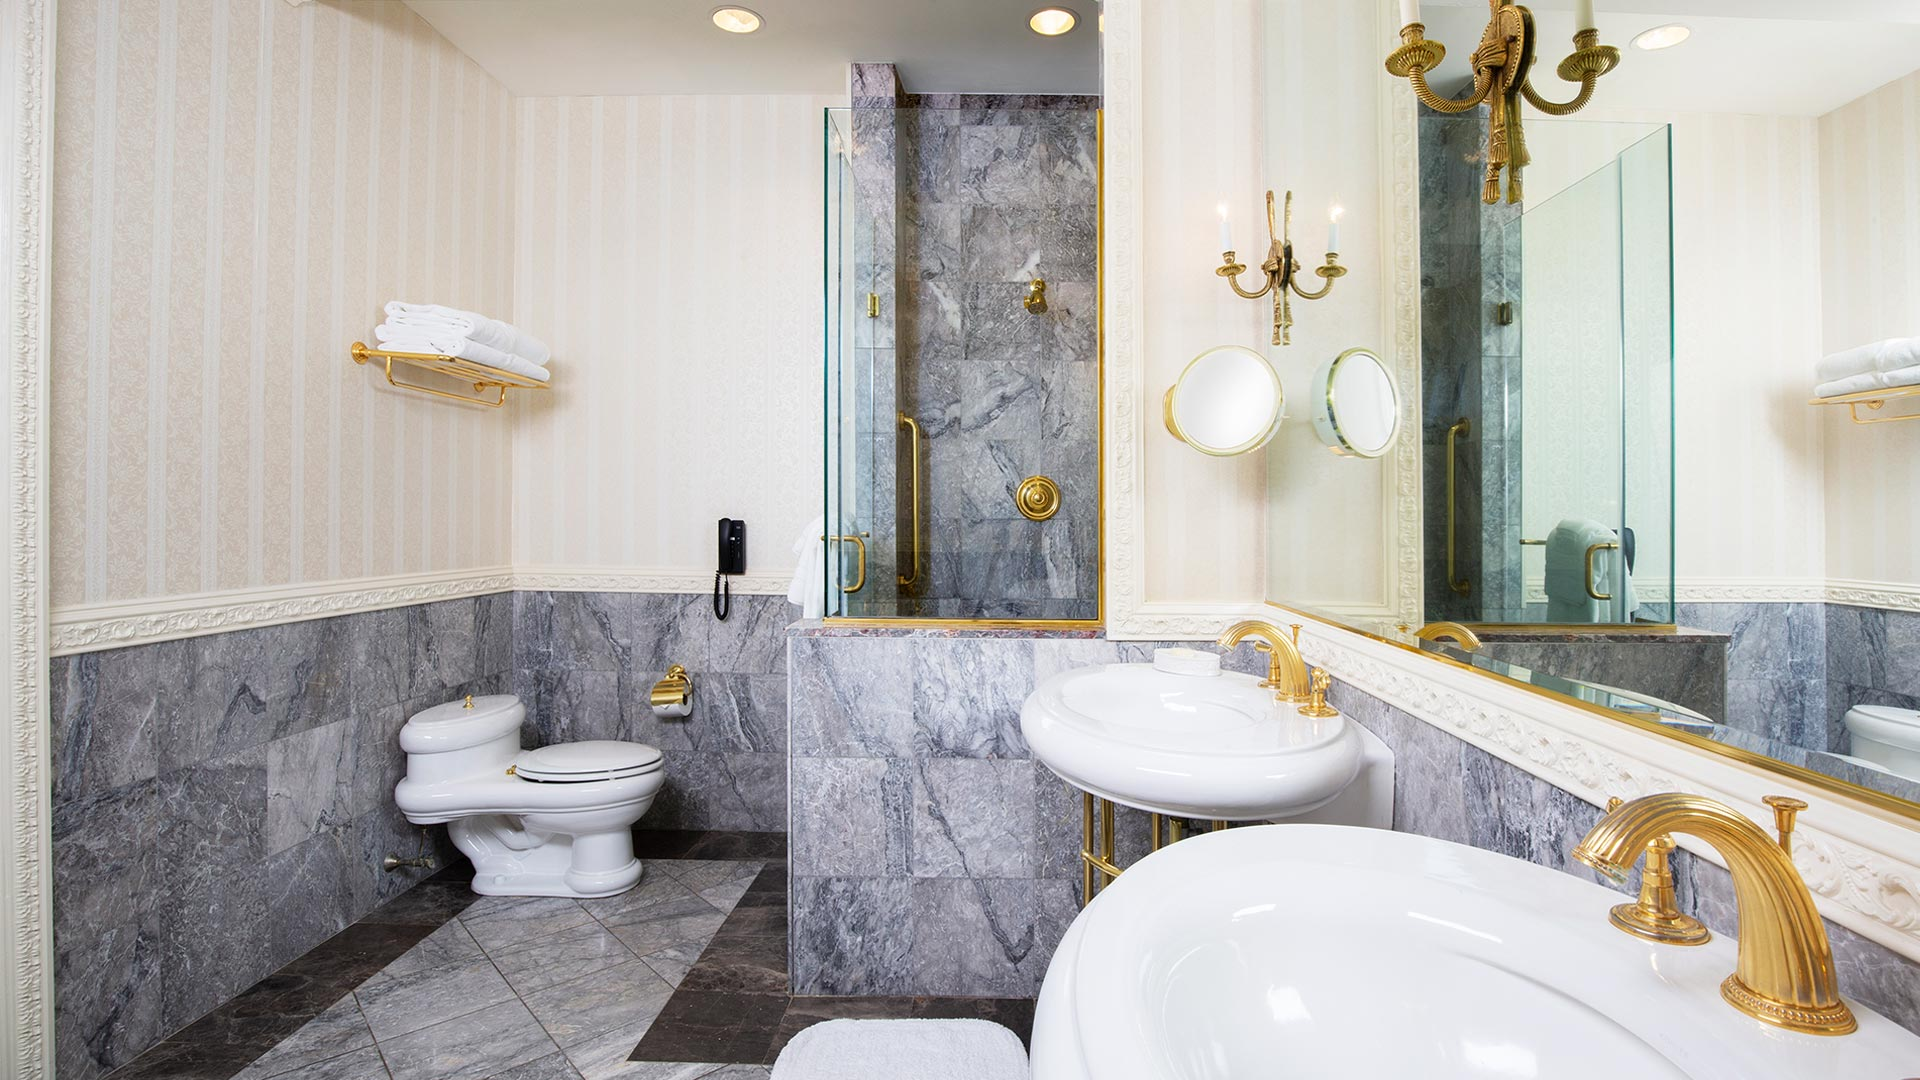 interior of the suite's bathroom. the room has neutral gray tiling, two sinks, a large mirror, and a walk in shower.